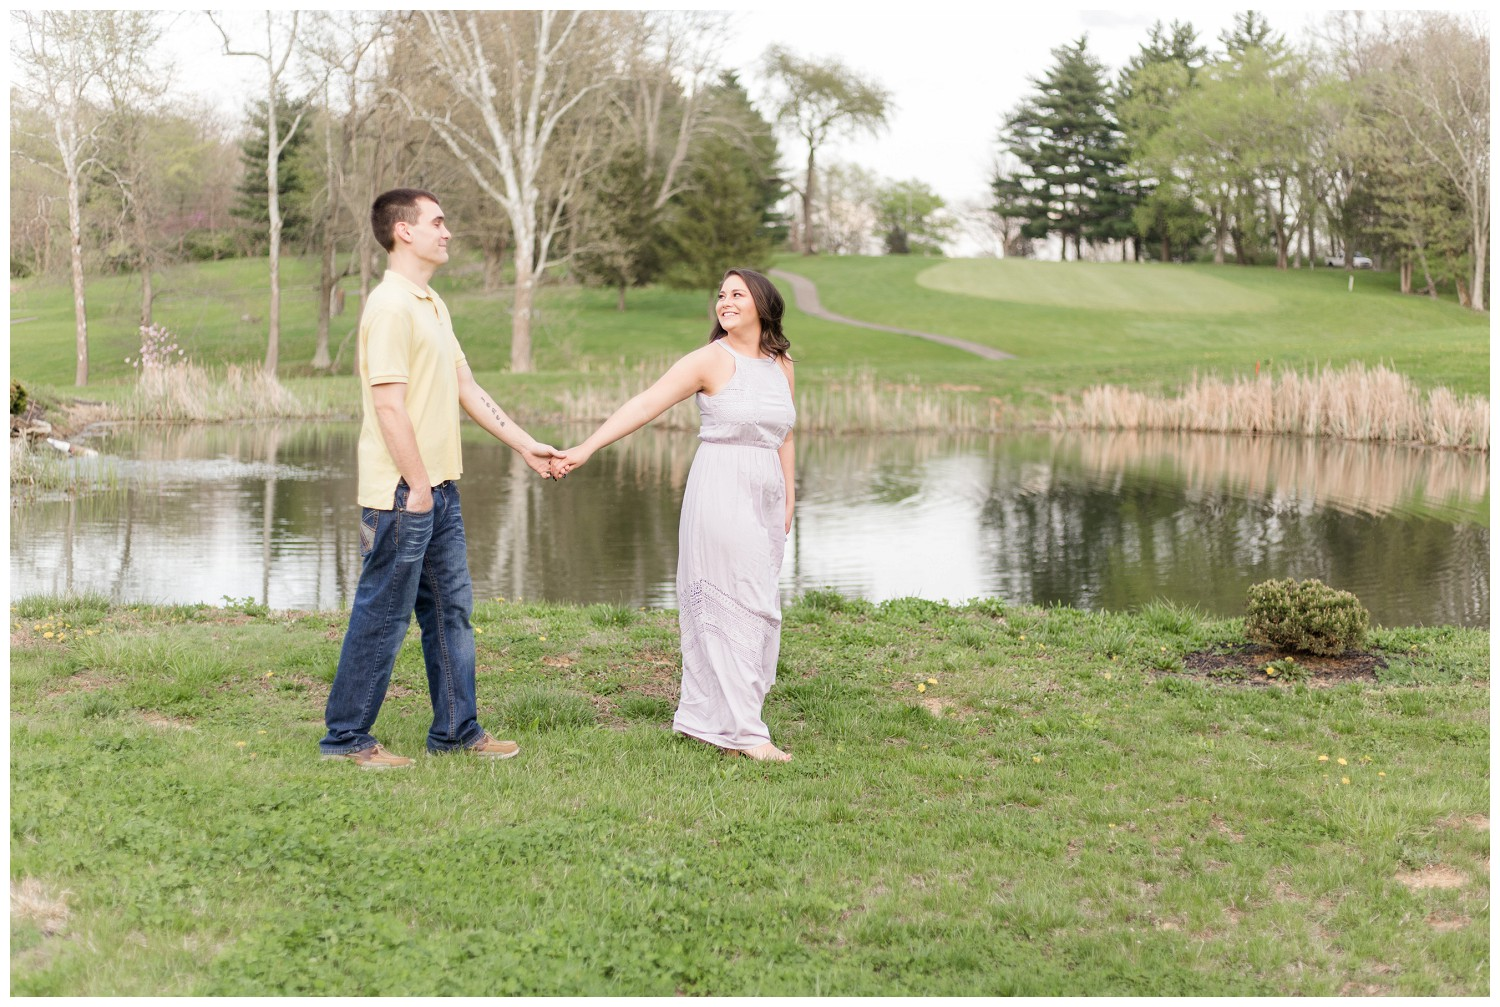 belwood-country-club-engagement-session_0010.jpg